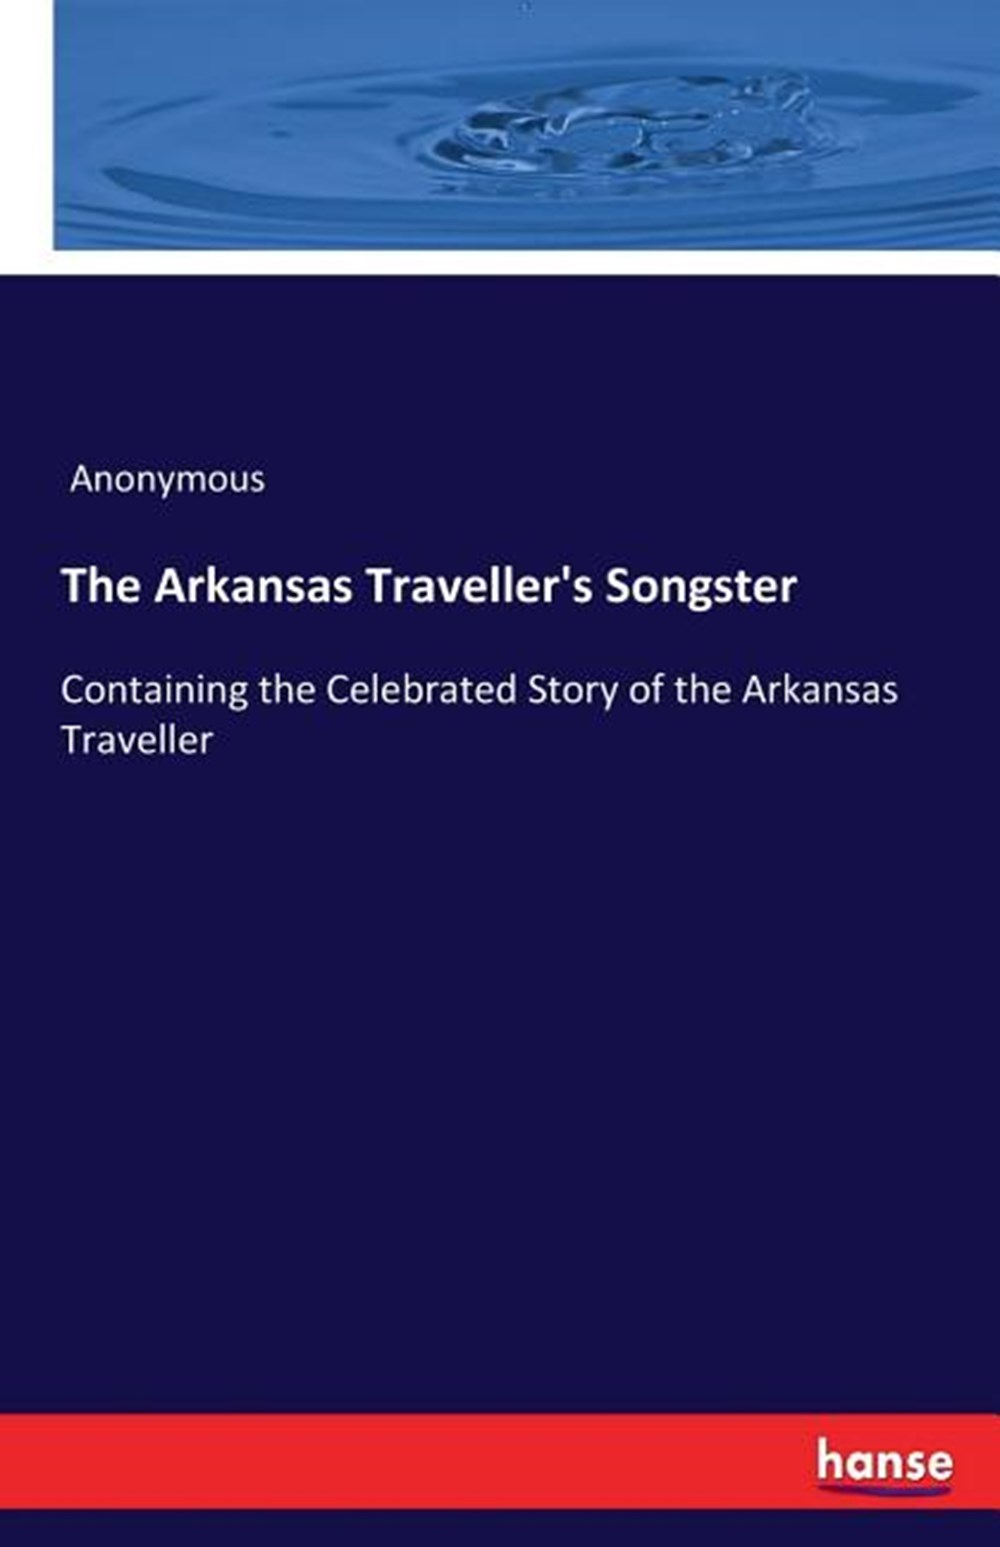 Arkansas Traveller's Songster Containing the Celebrated Story of the Arkansas Traveller